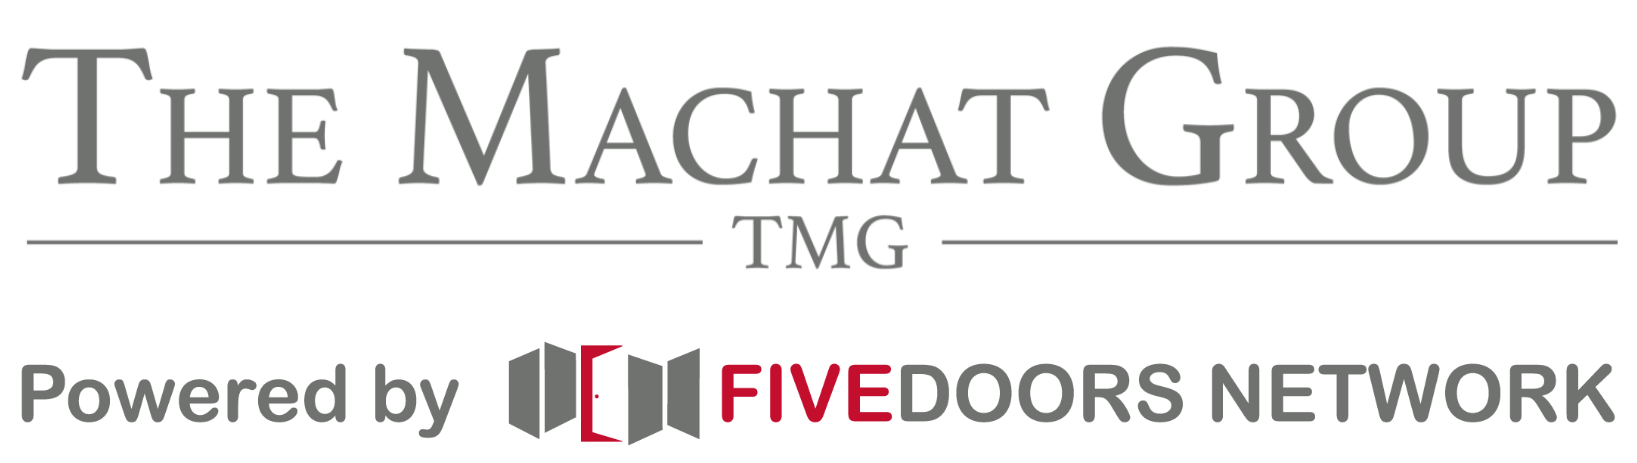 The Machat Group Powered by Five Doors Network logo